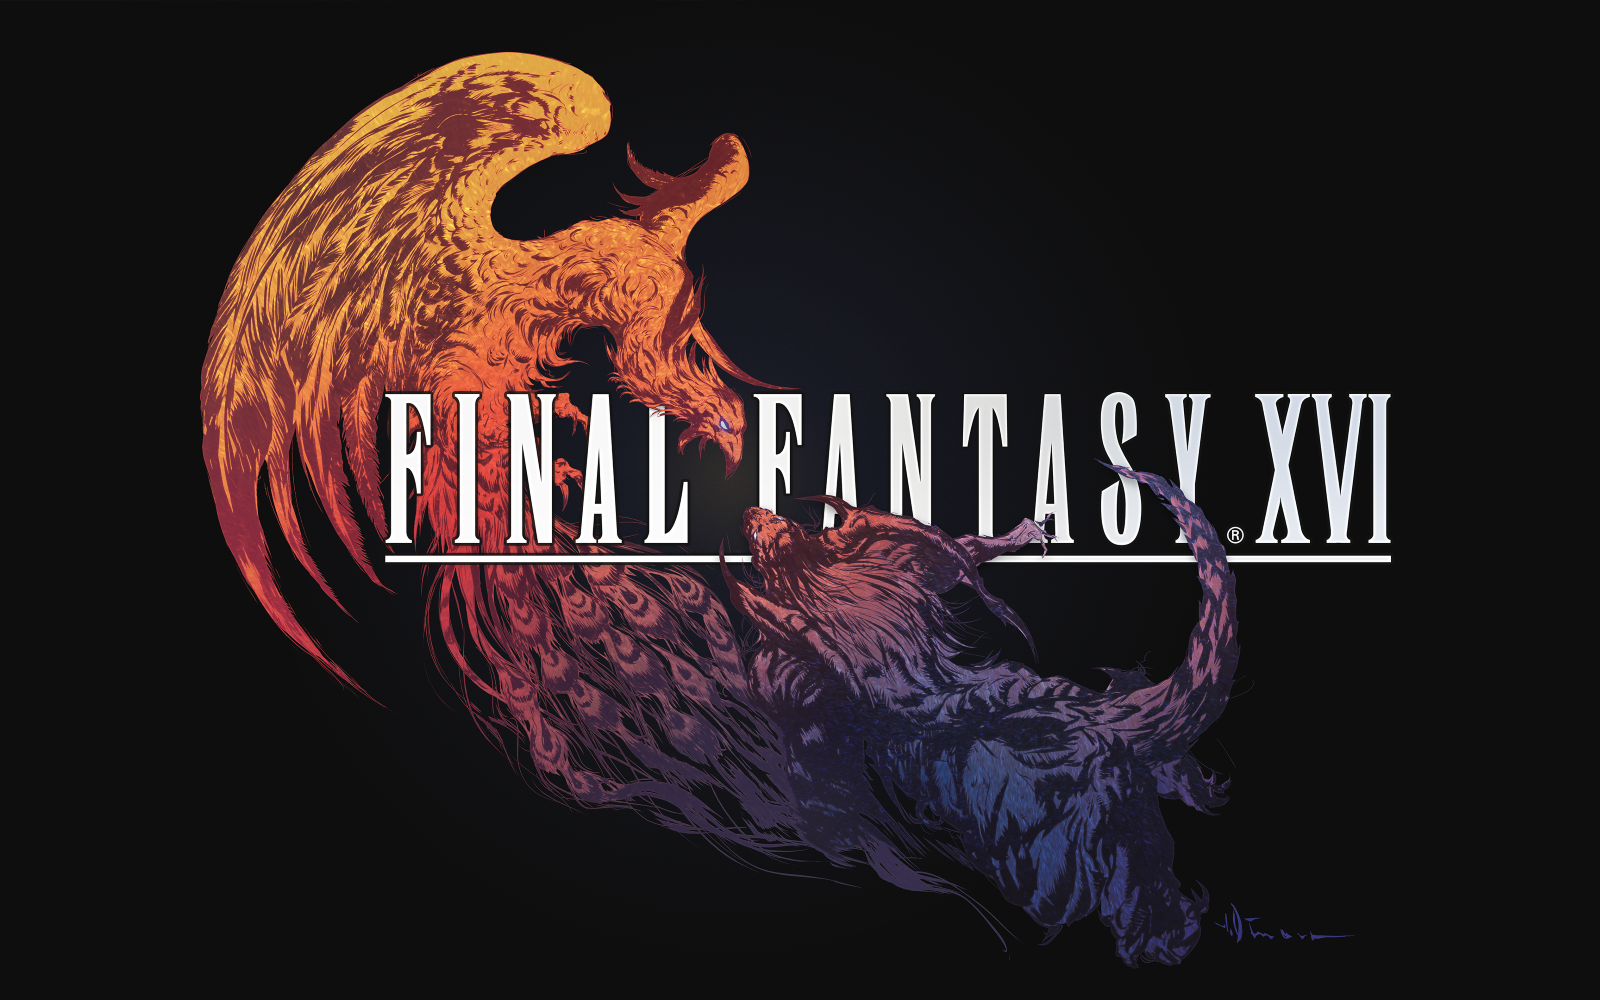 Final Fantasy XVI Announced. Confirmed As Console Exclusive For PlayStation 5